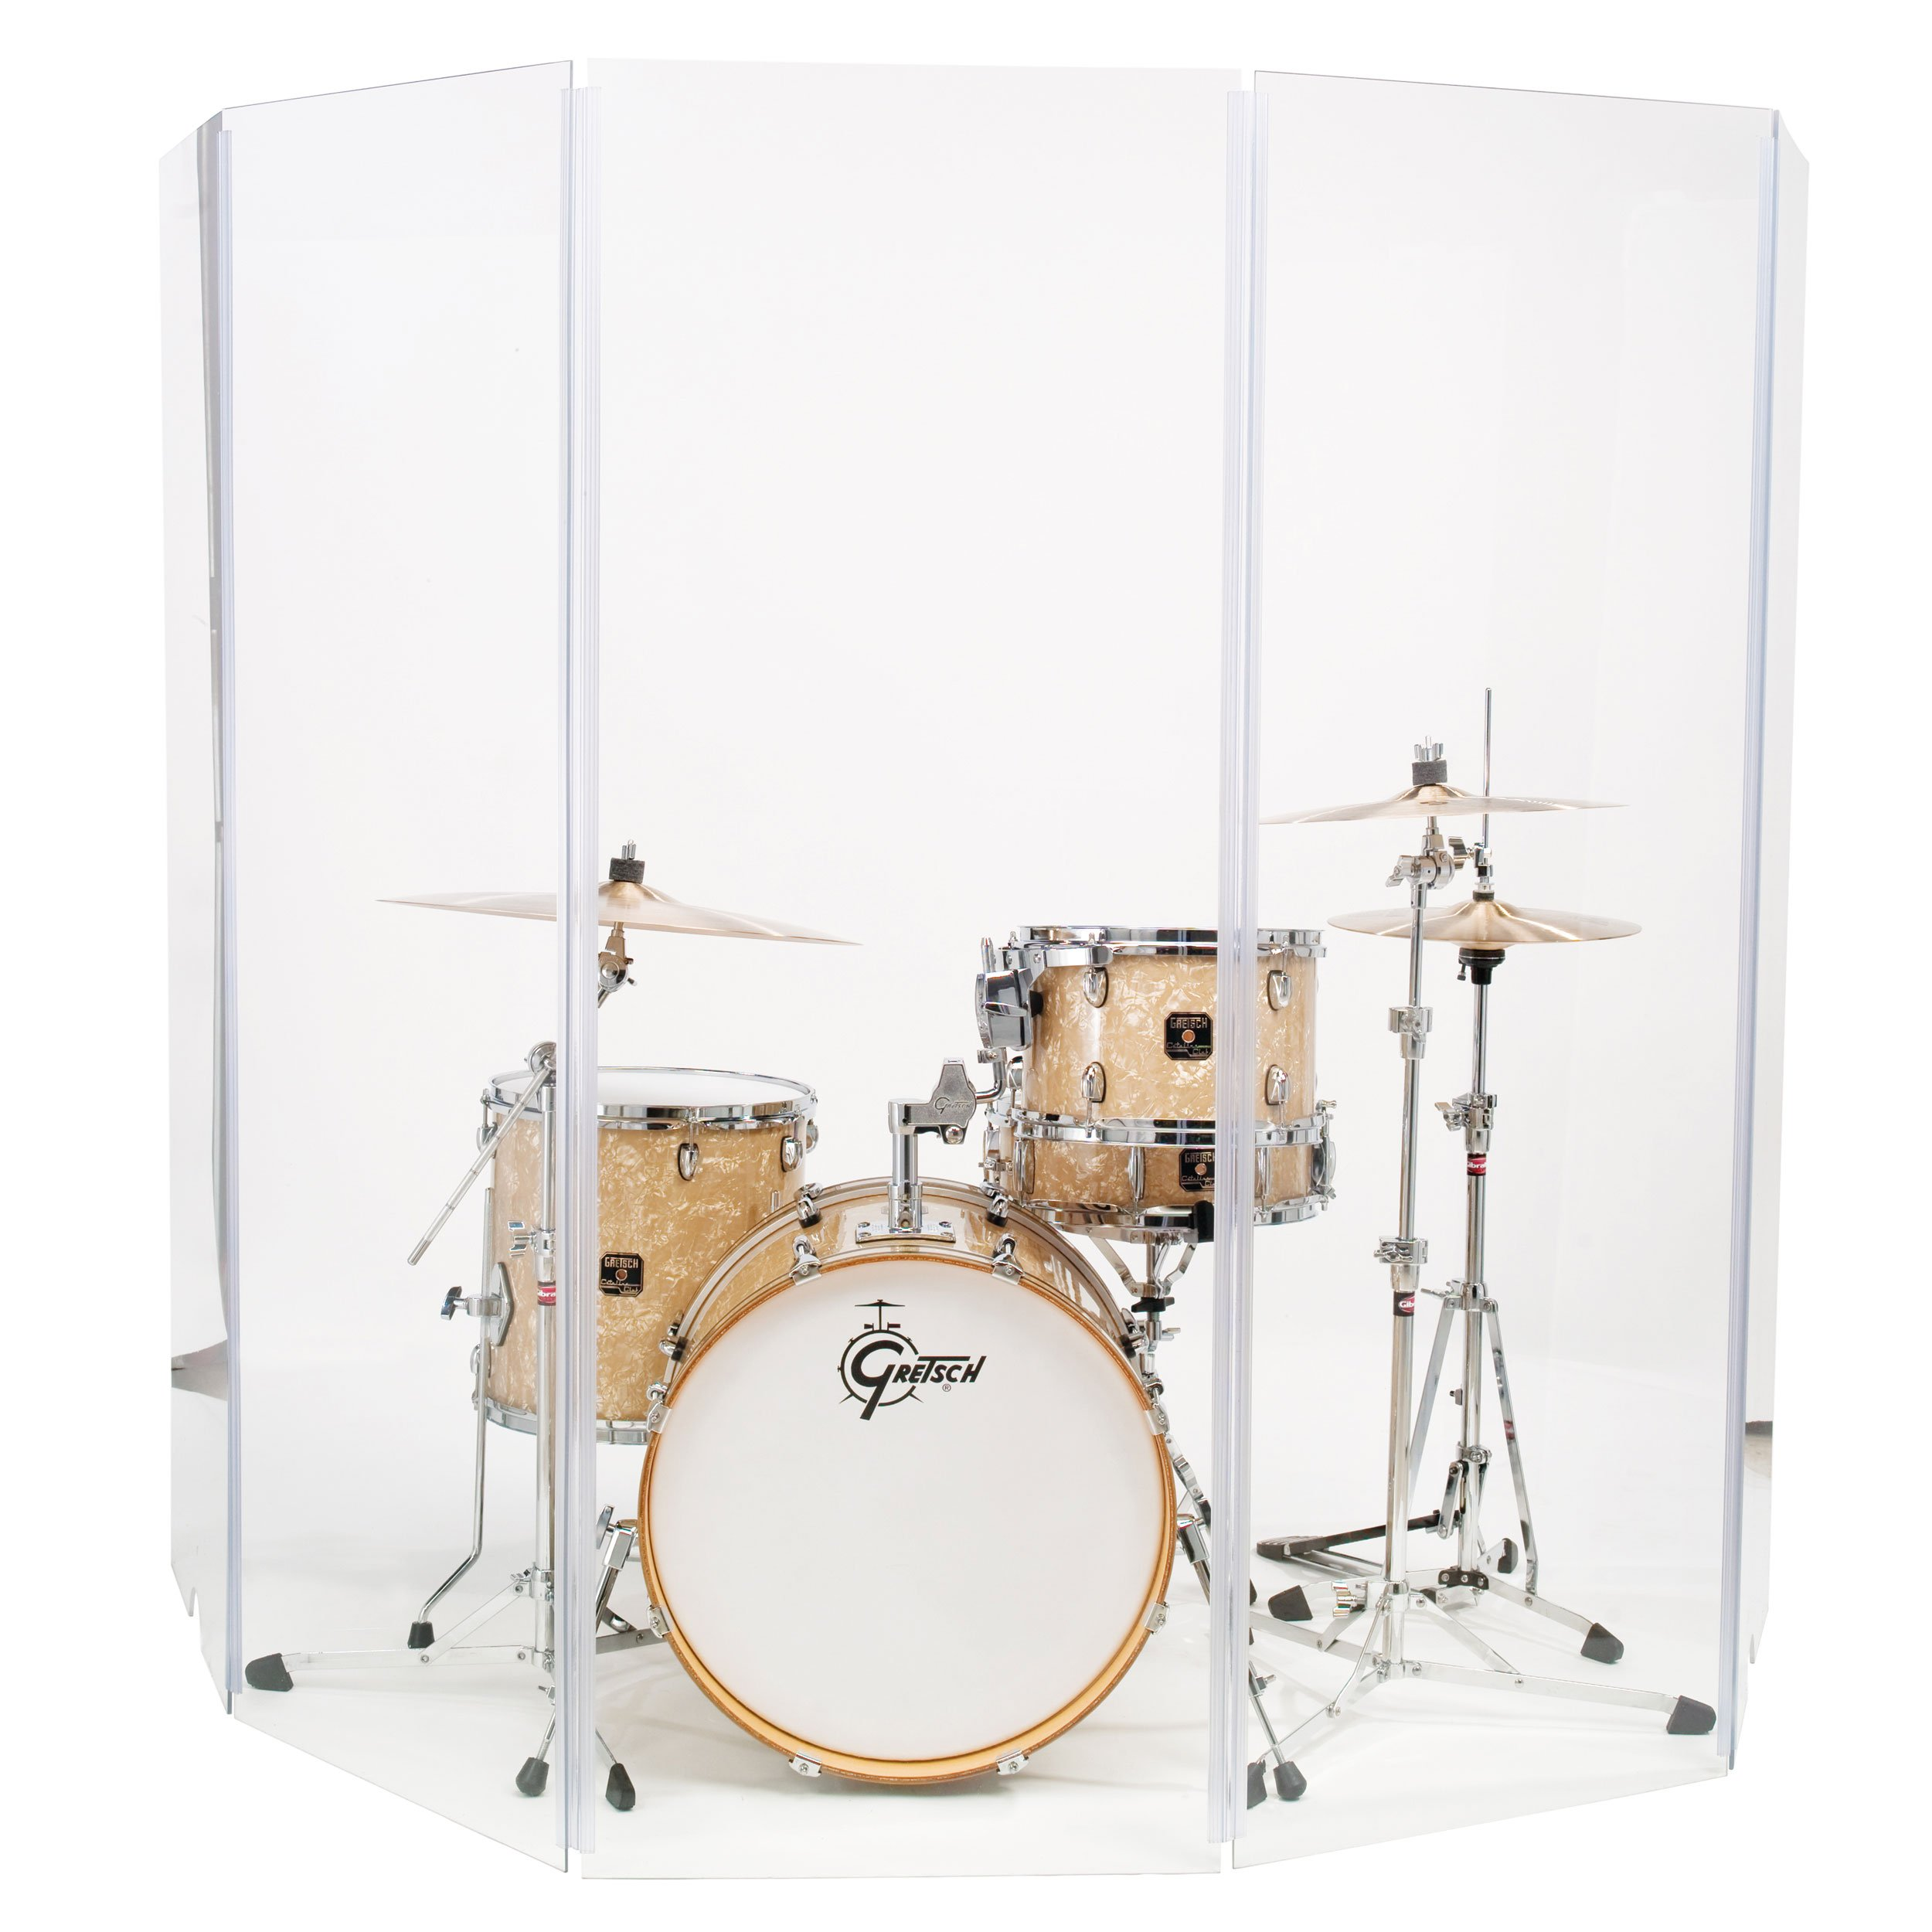 Drum Shield Drum Screen Drum Panels Ds65L Five 2ft X 6ft Drum Panels with Living Hinges